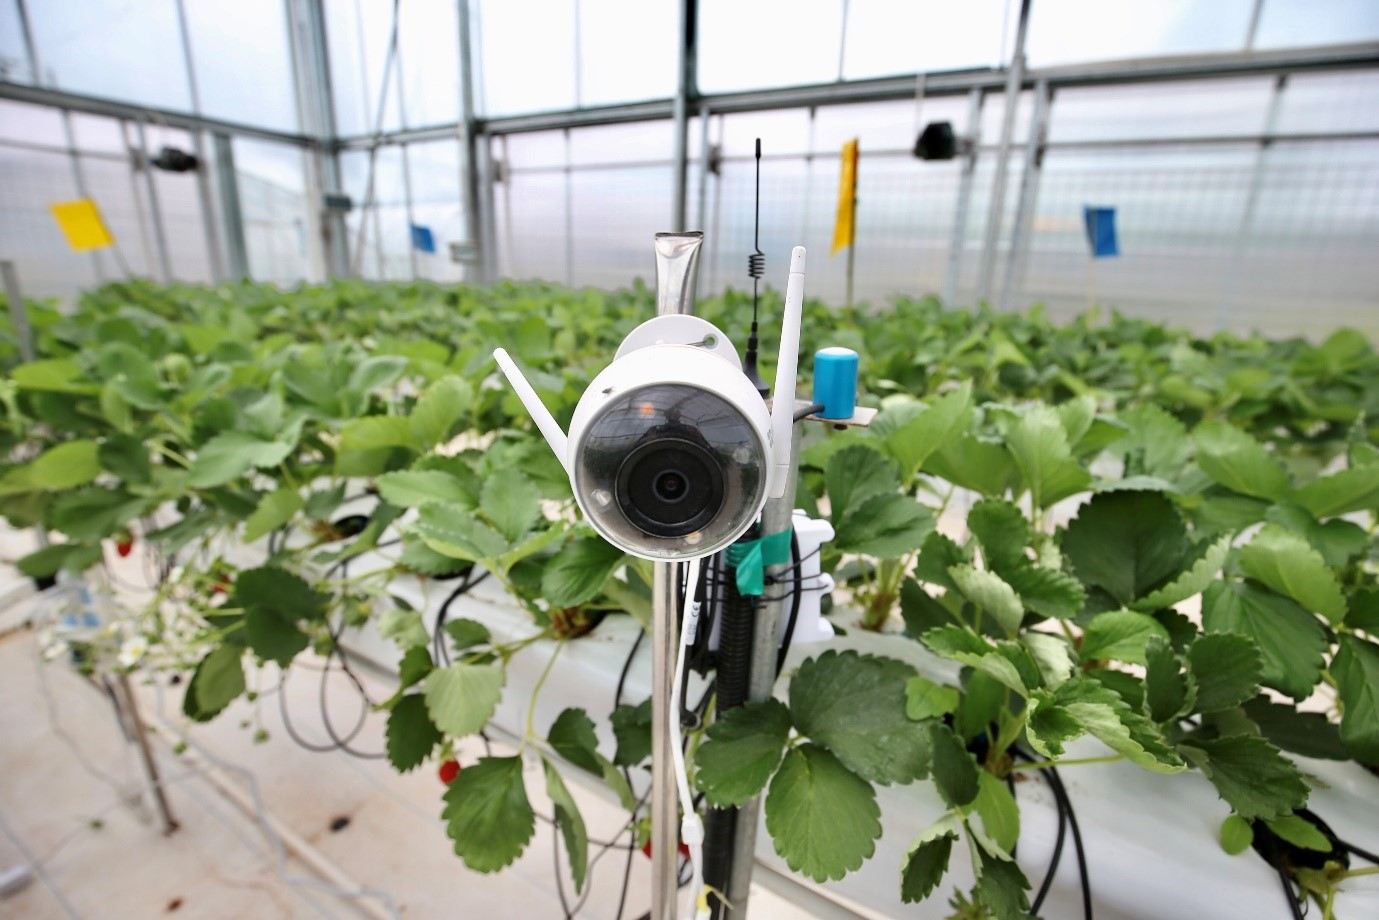 Sensors deployed in the greenhouse to monitor plant growth at the Smart Agriculture Competition (Source: Pinduoduo)